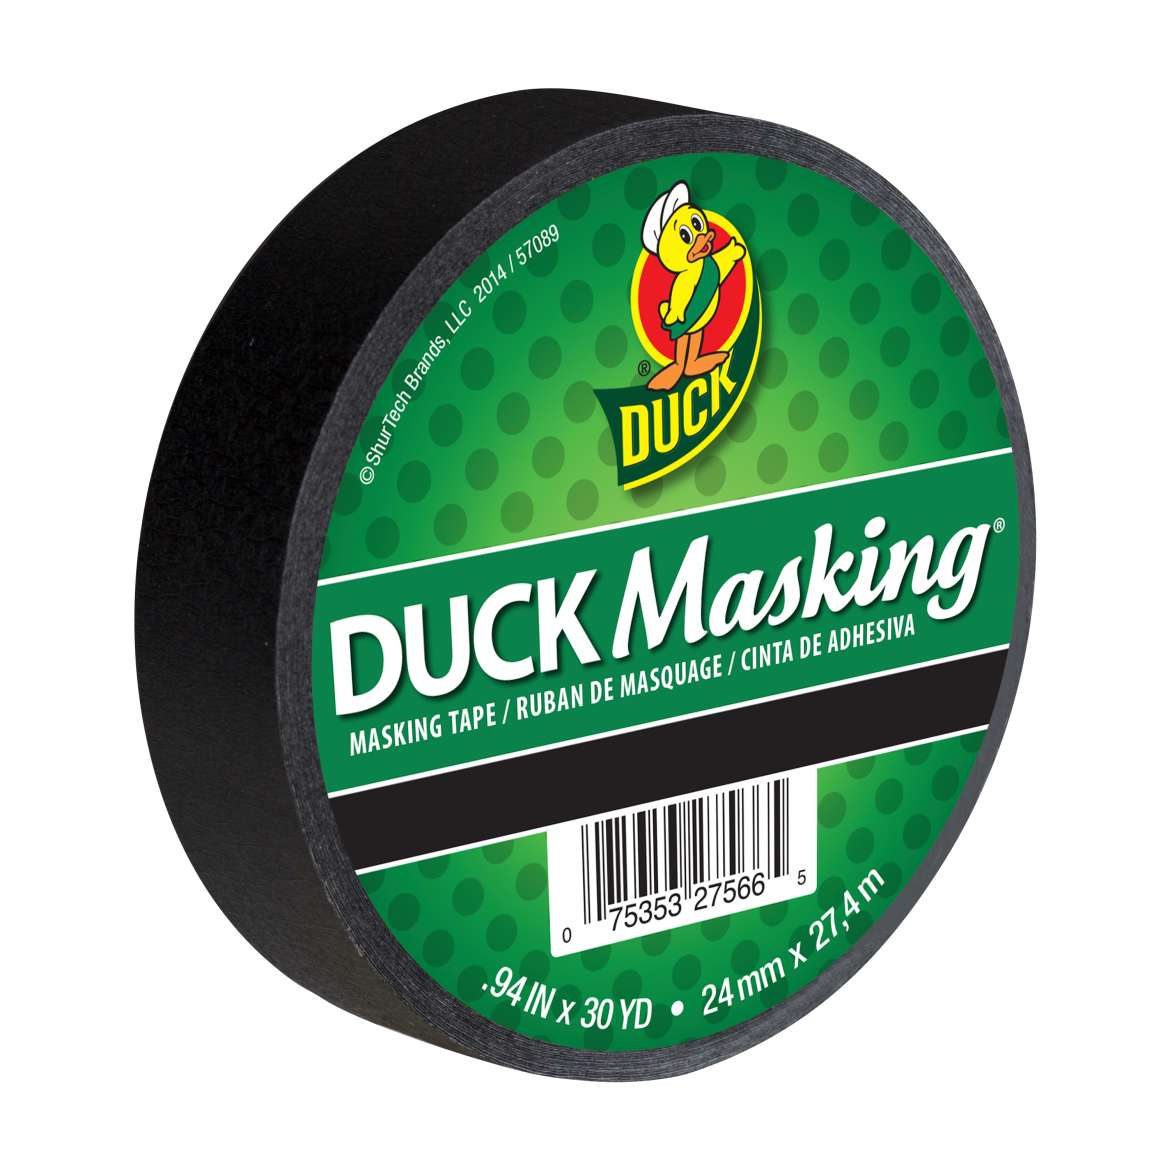 Duck Masking® Color Masking Tape - Black, .94 in. x 30 yd. Image